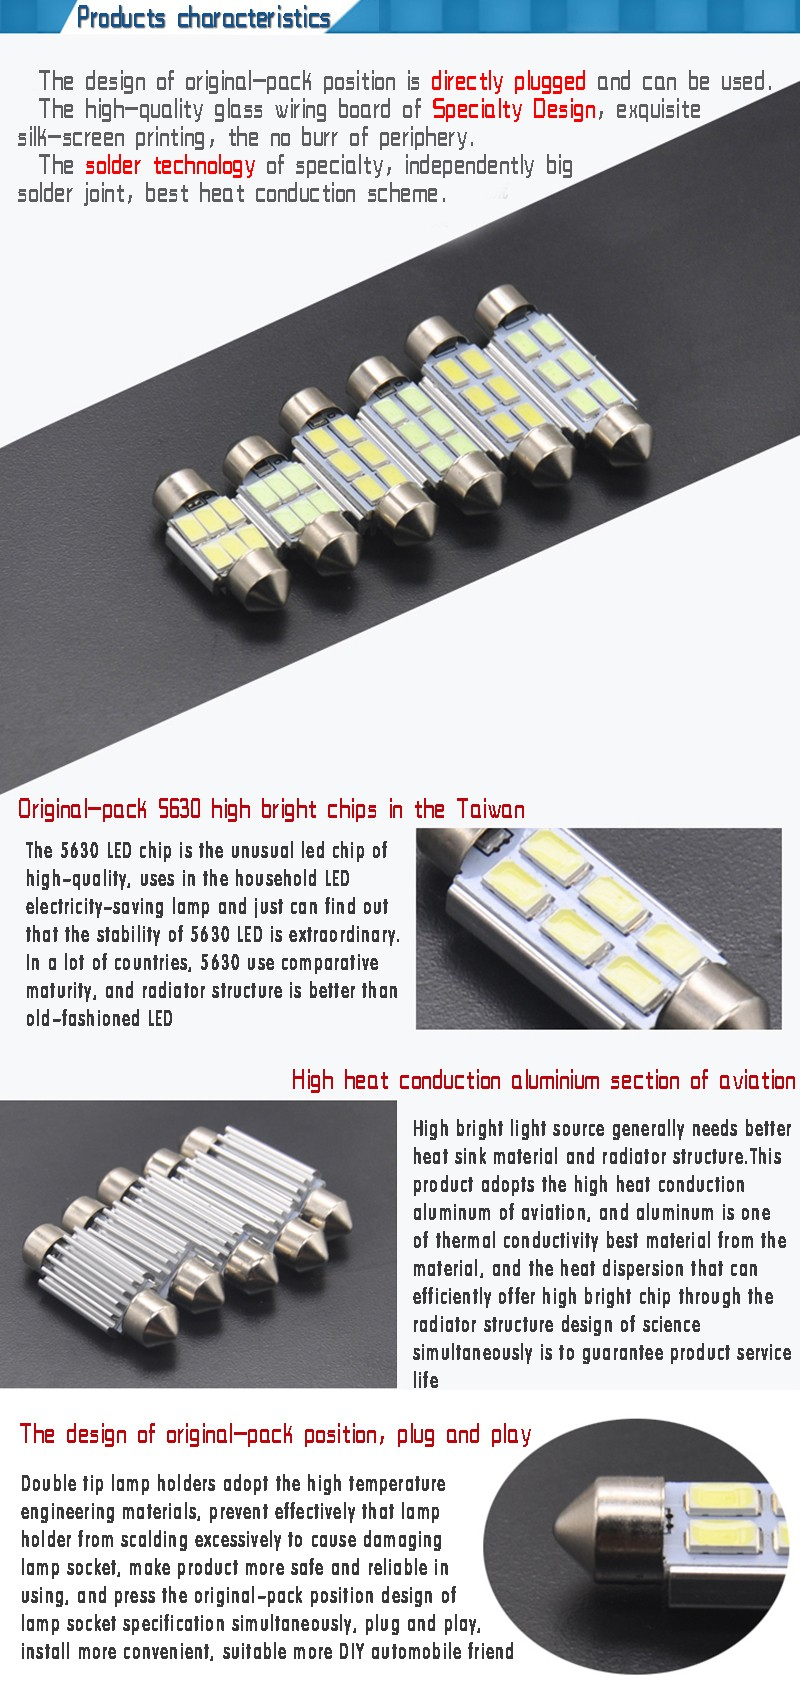 2pcs 31mm 36mm 39mm 5630led White Blue Car Interior Lights License Quality Aluminum Printed Circuit Board Widely Used For Led Plate Light Bulb Dome Festoon Lamp Source 12v 2x